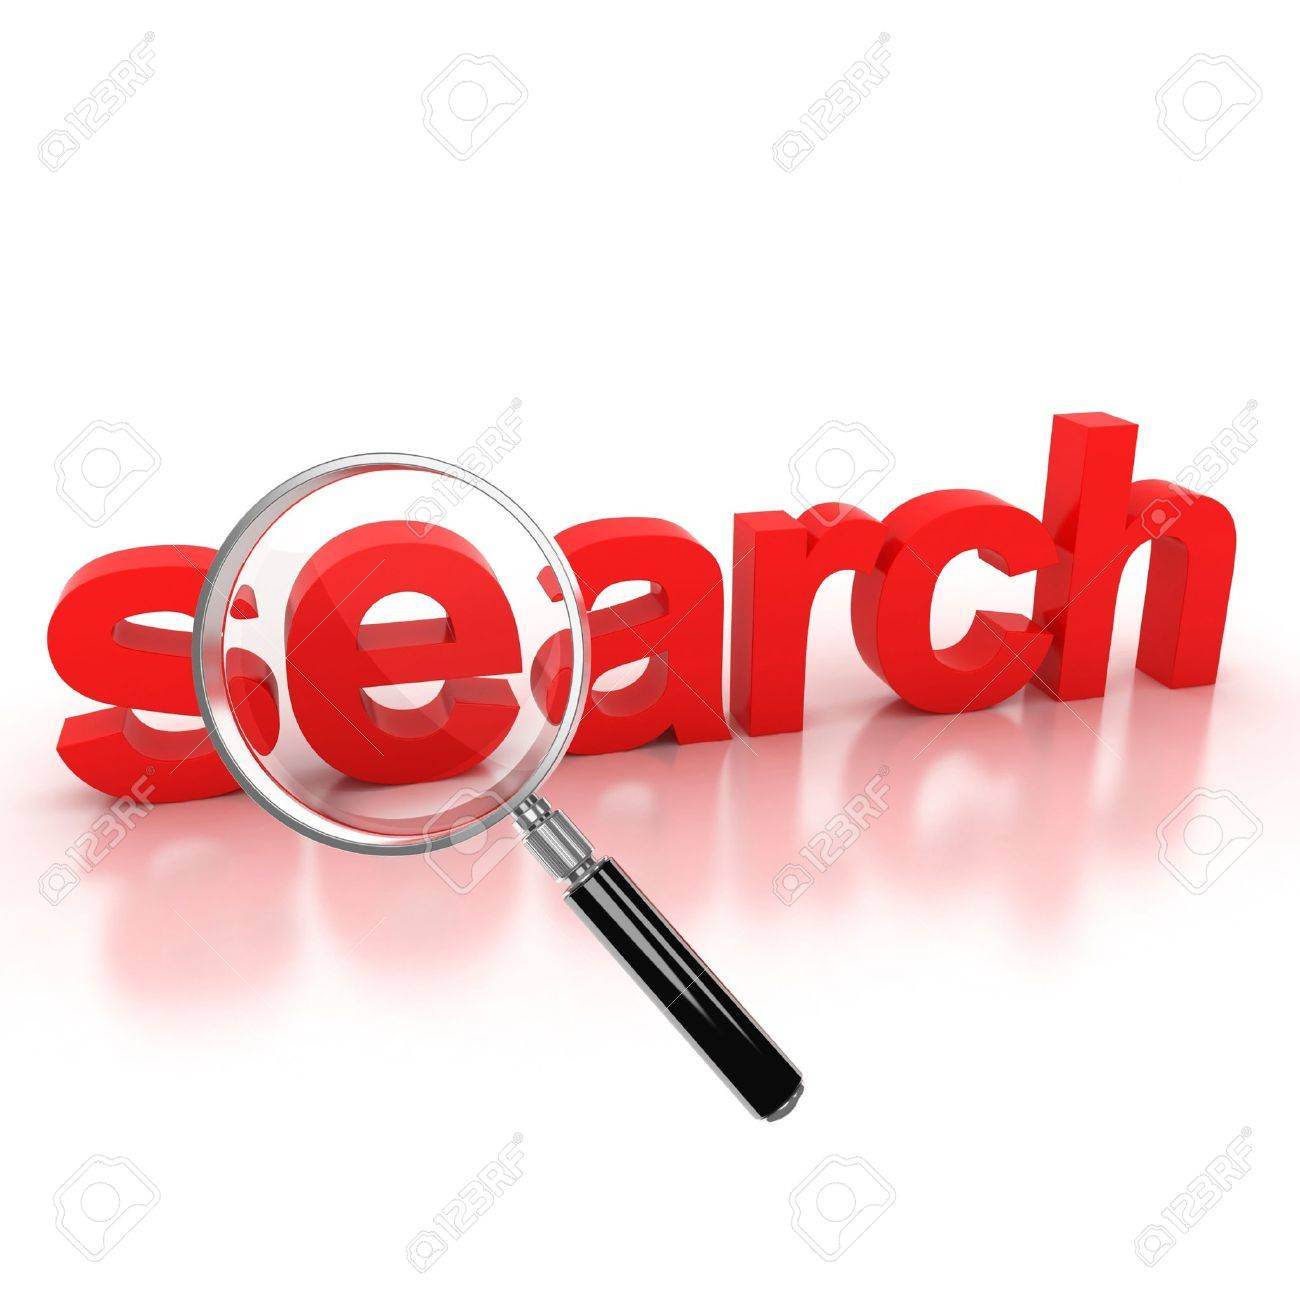 search icon - search 3d letters under the magnifier Stock Photo - 12330895